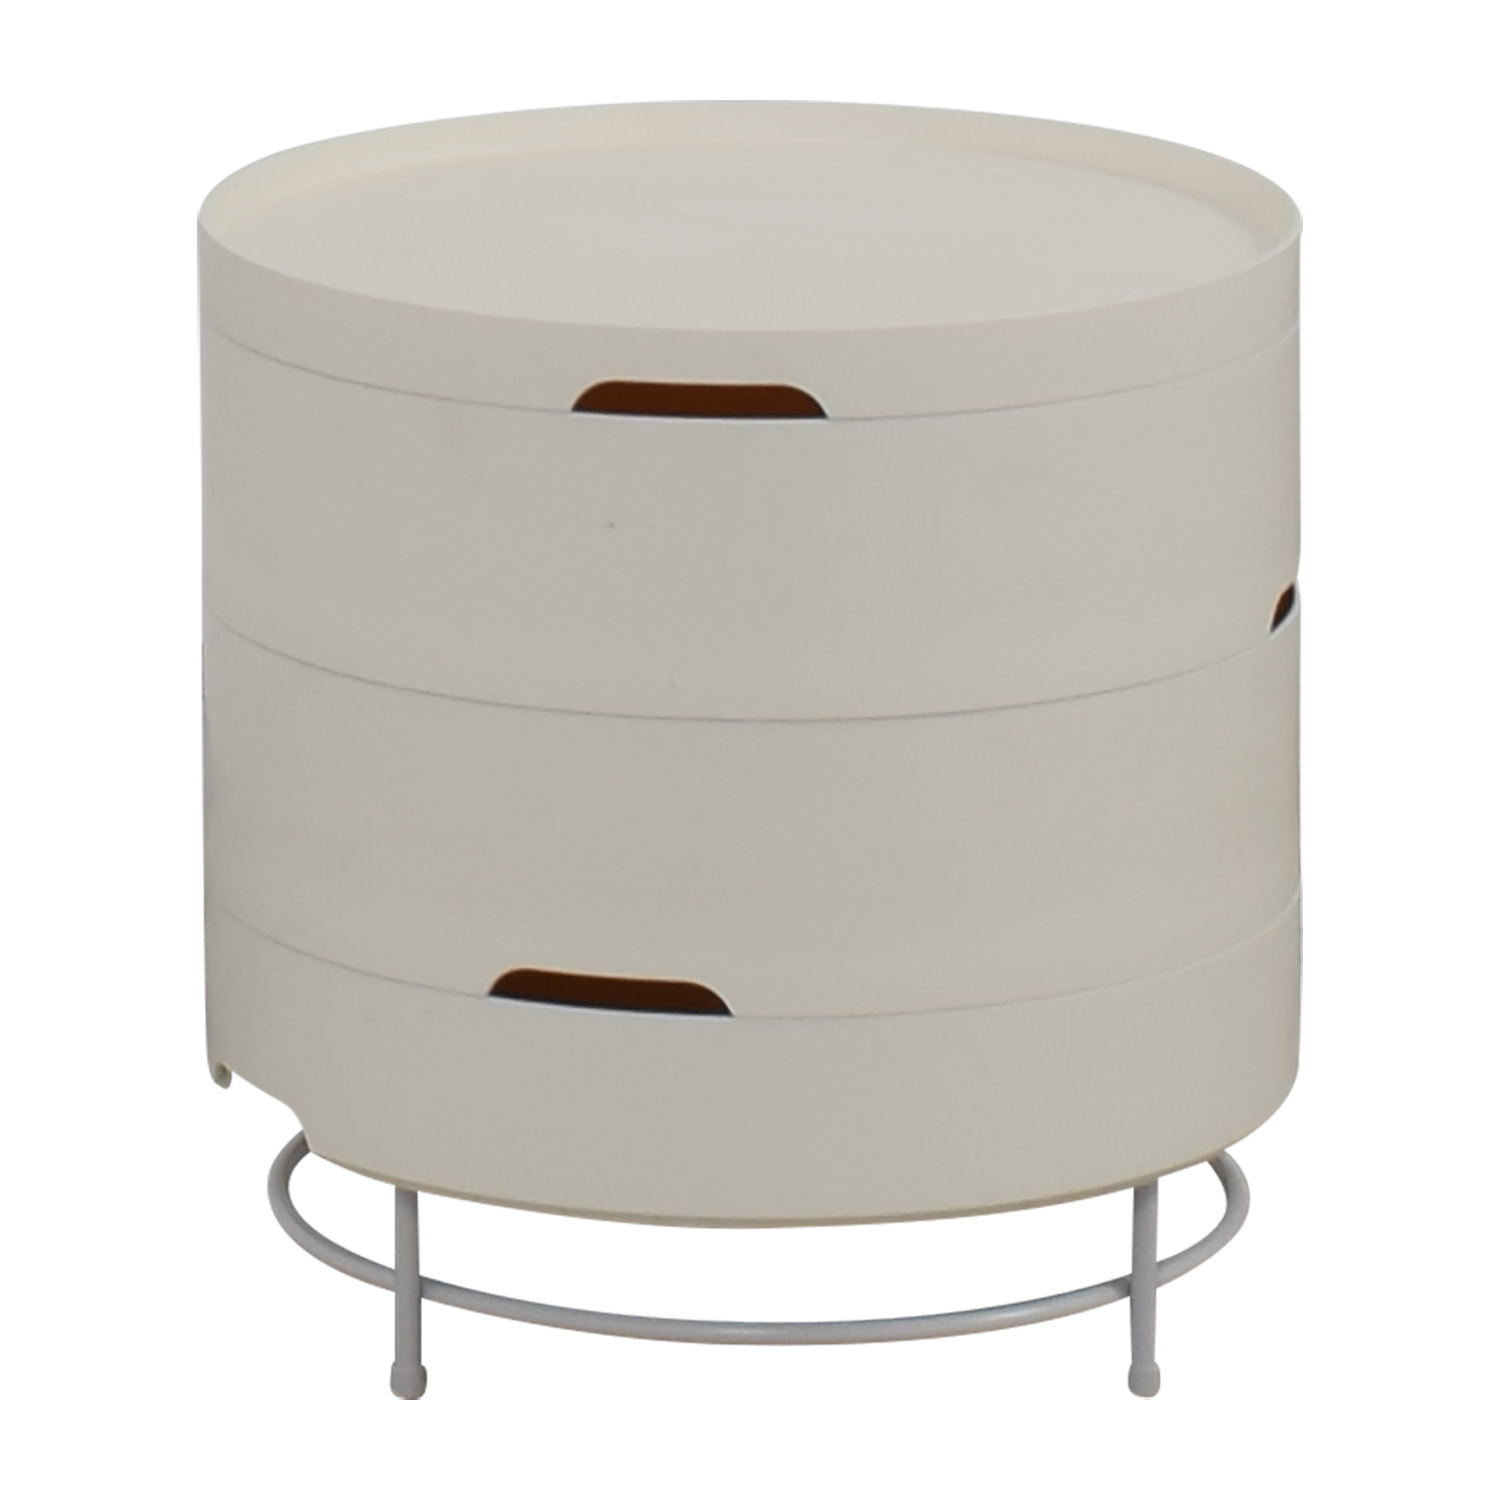 Charming ... Shop IKEA PS 2014 White Round Storage Table IKEA ...